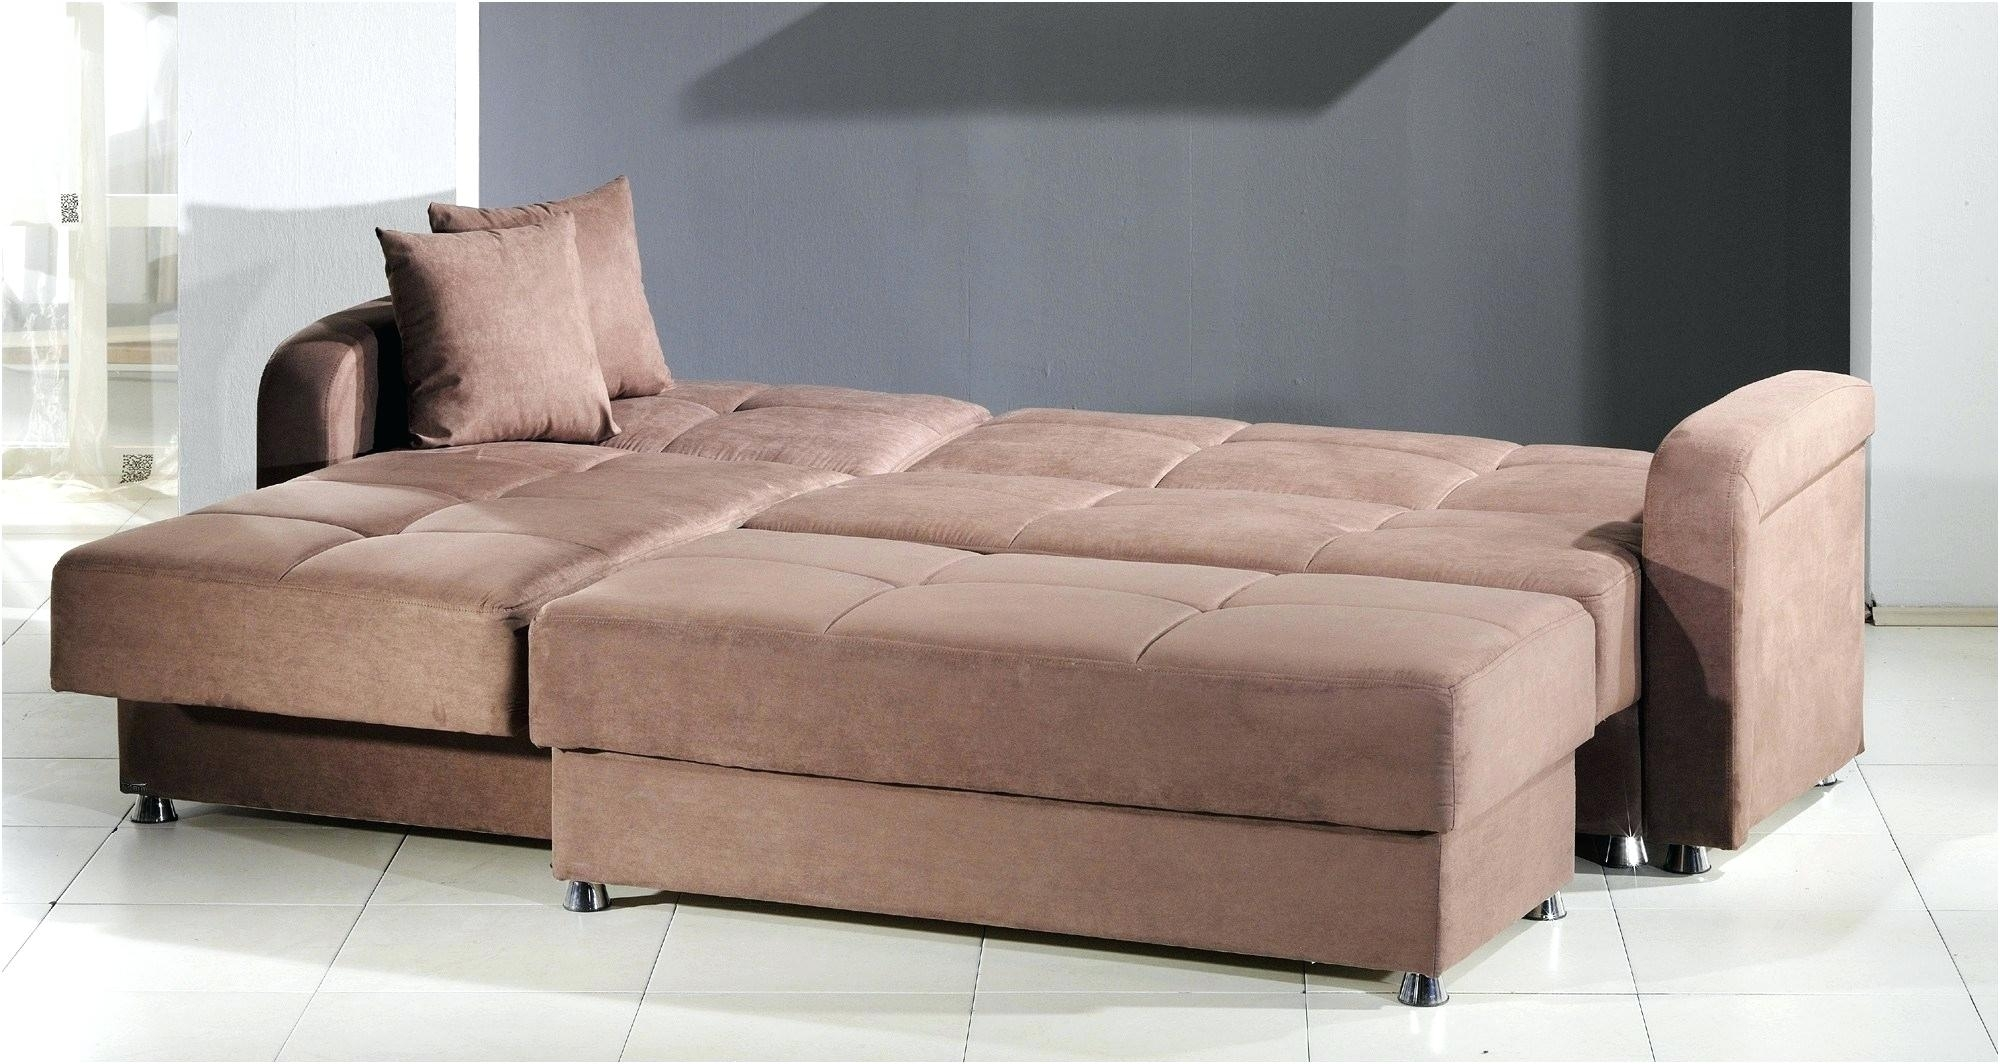 Decoration: Sofa Bed With Storage Underneath Full Size Of Sectional For Nz Sectional Sofas (Image 4 of 10)